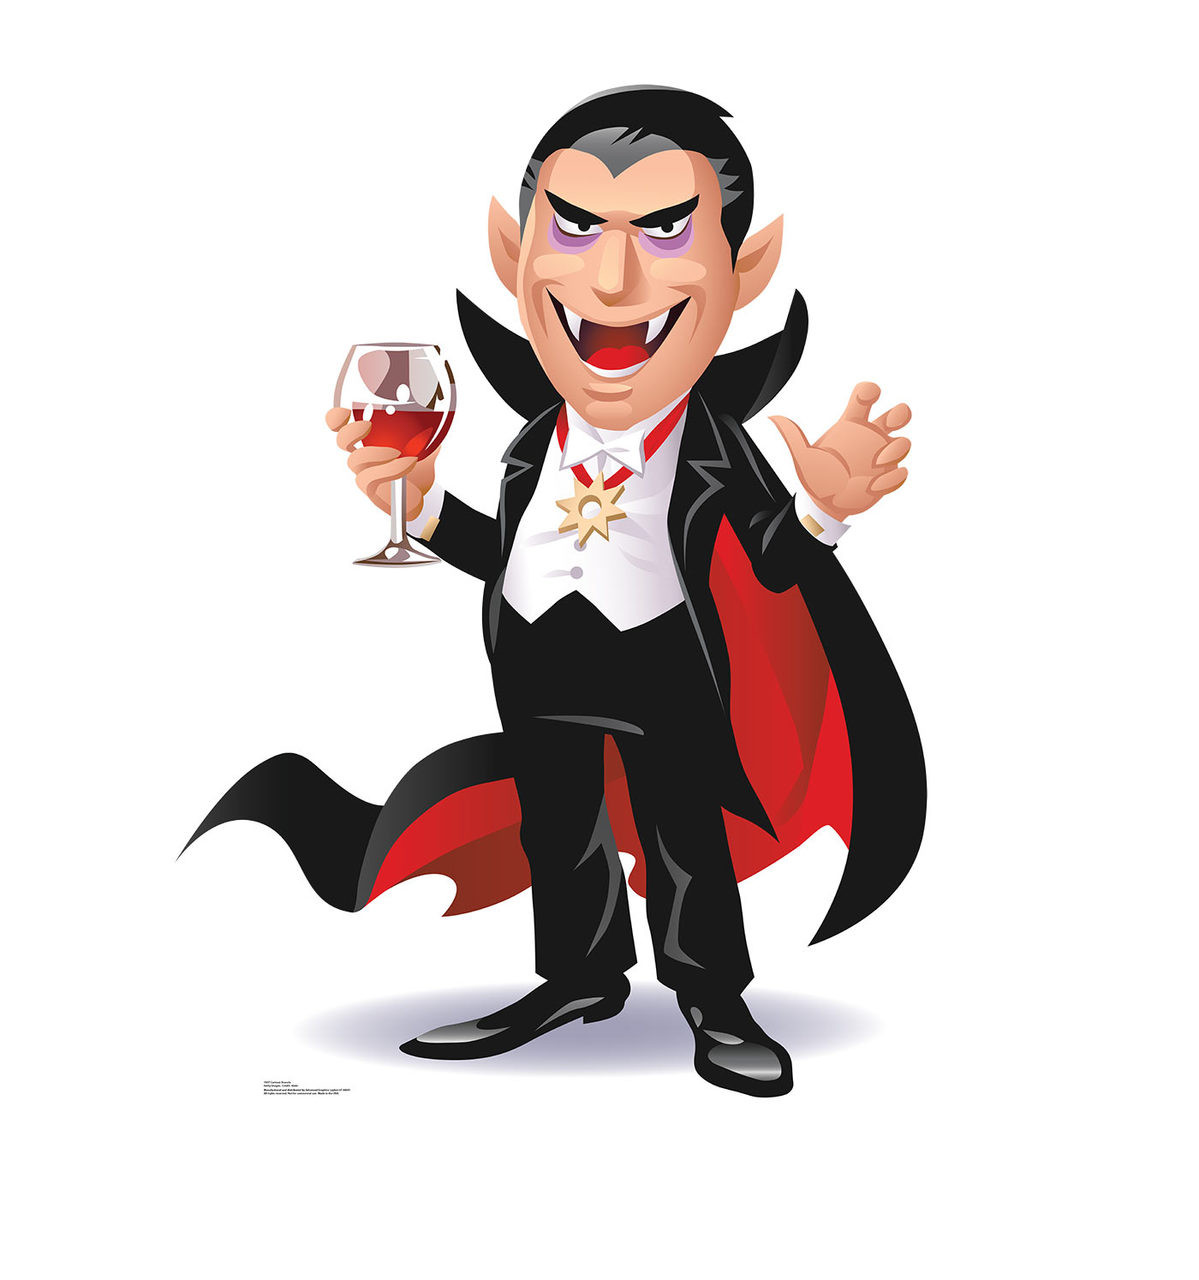 life size cartoon dracula cardboard standup cardboard cutout. Black Bedroom Furniture Sets. Home Design Ideas